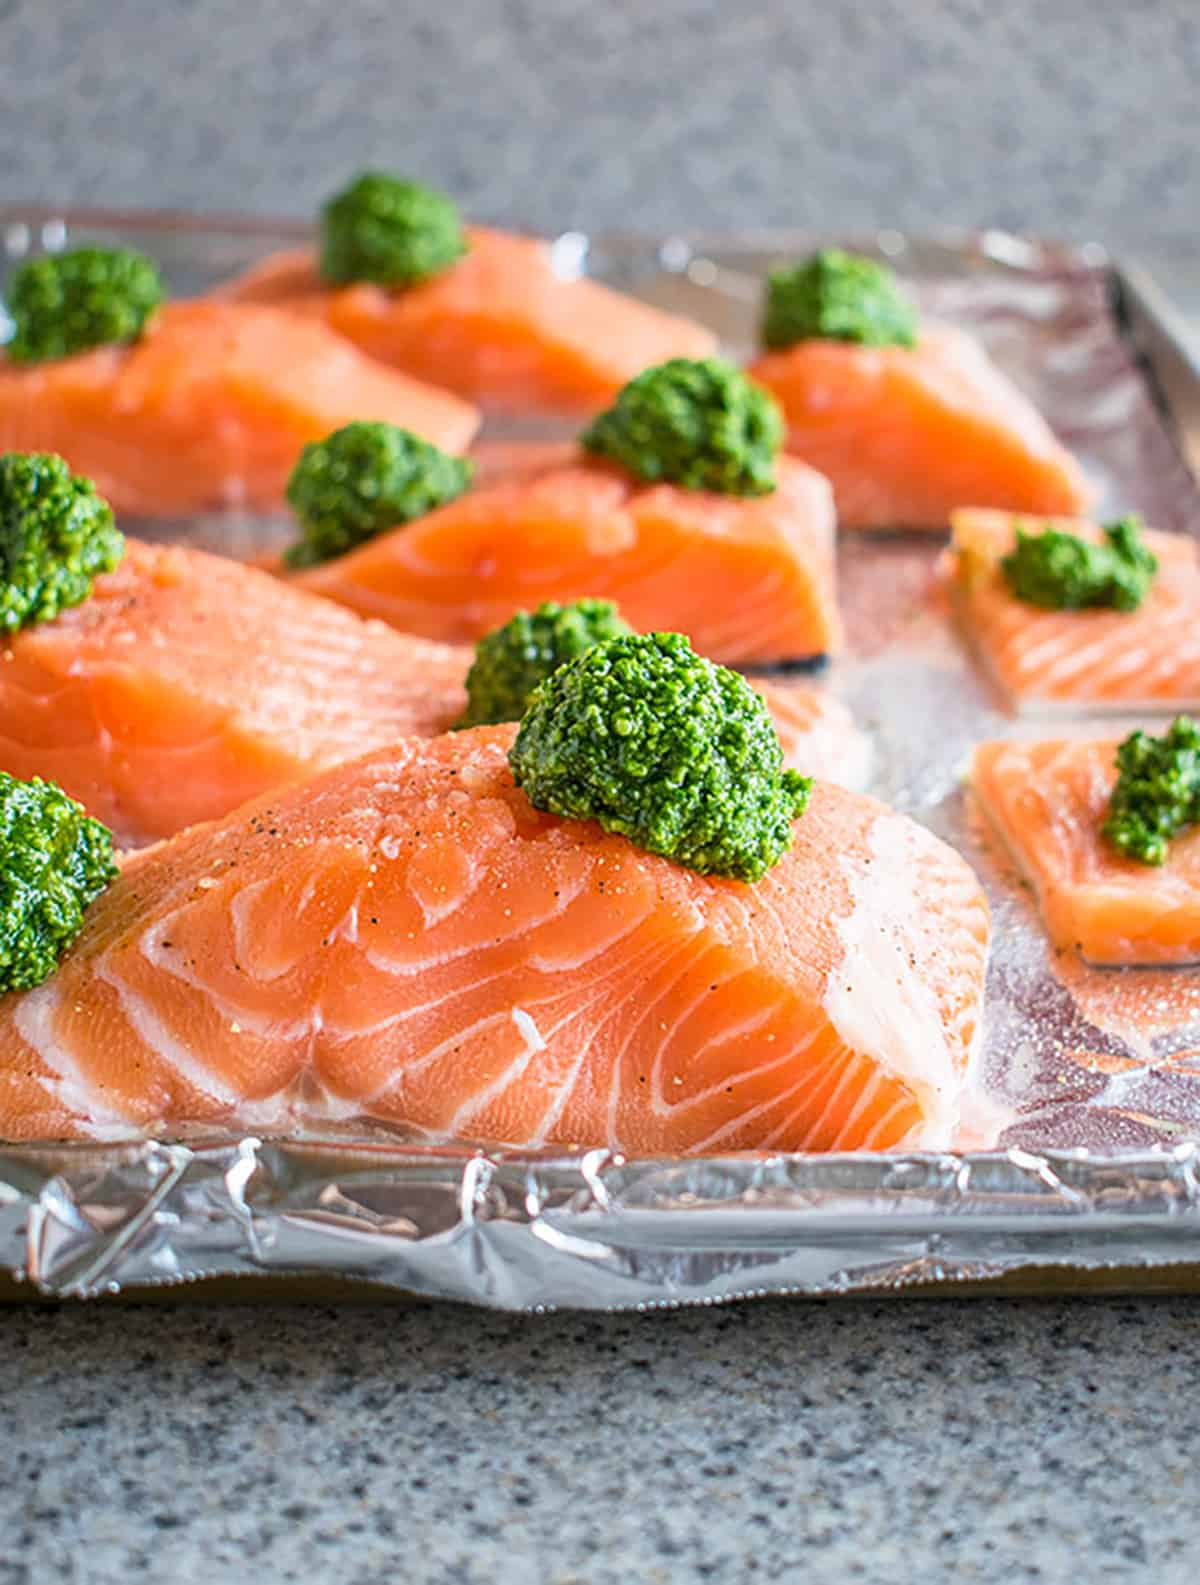 raw salmon with pesto on foil-lined sheet pan